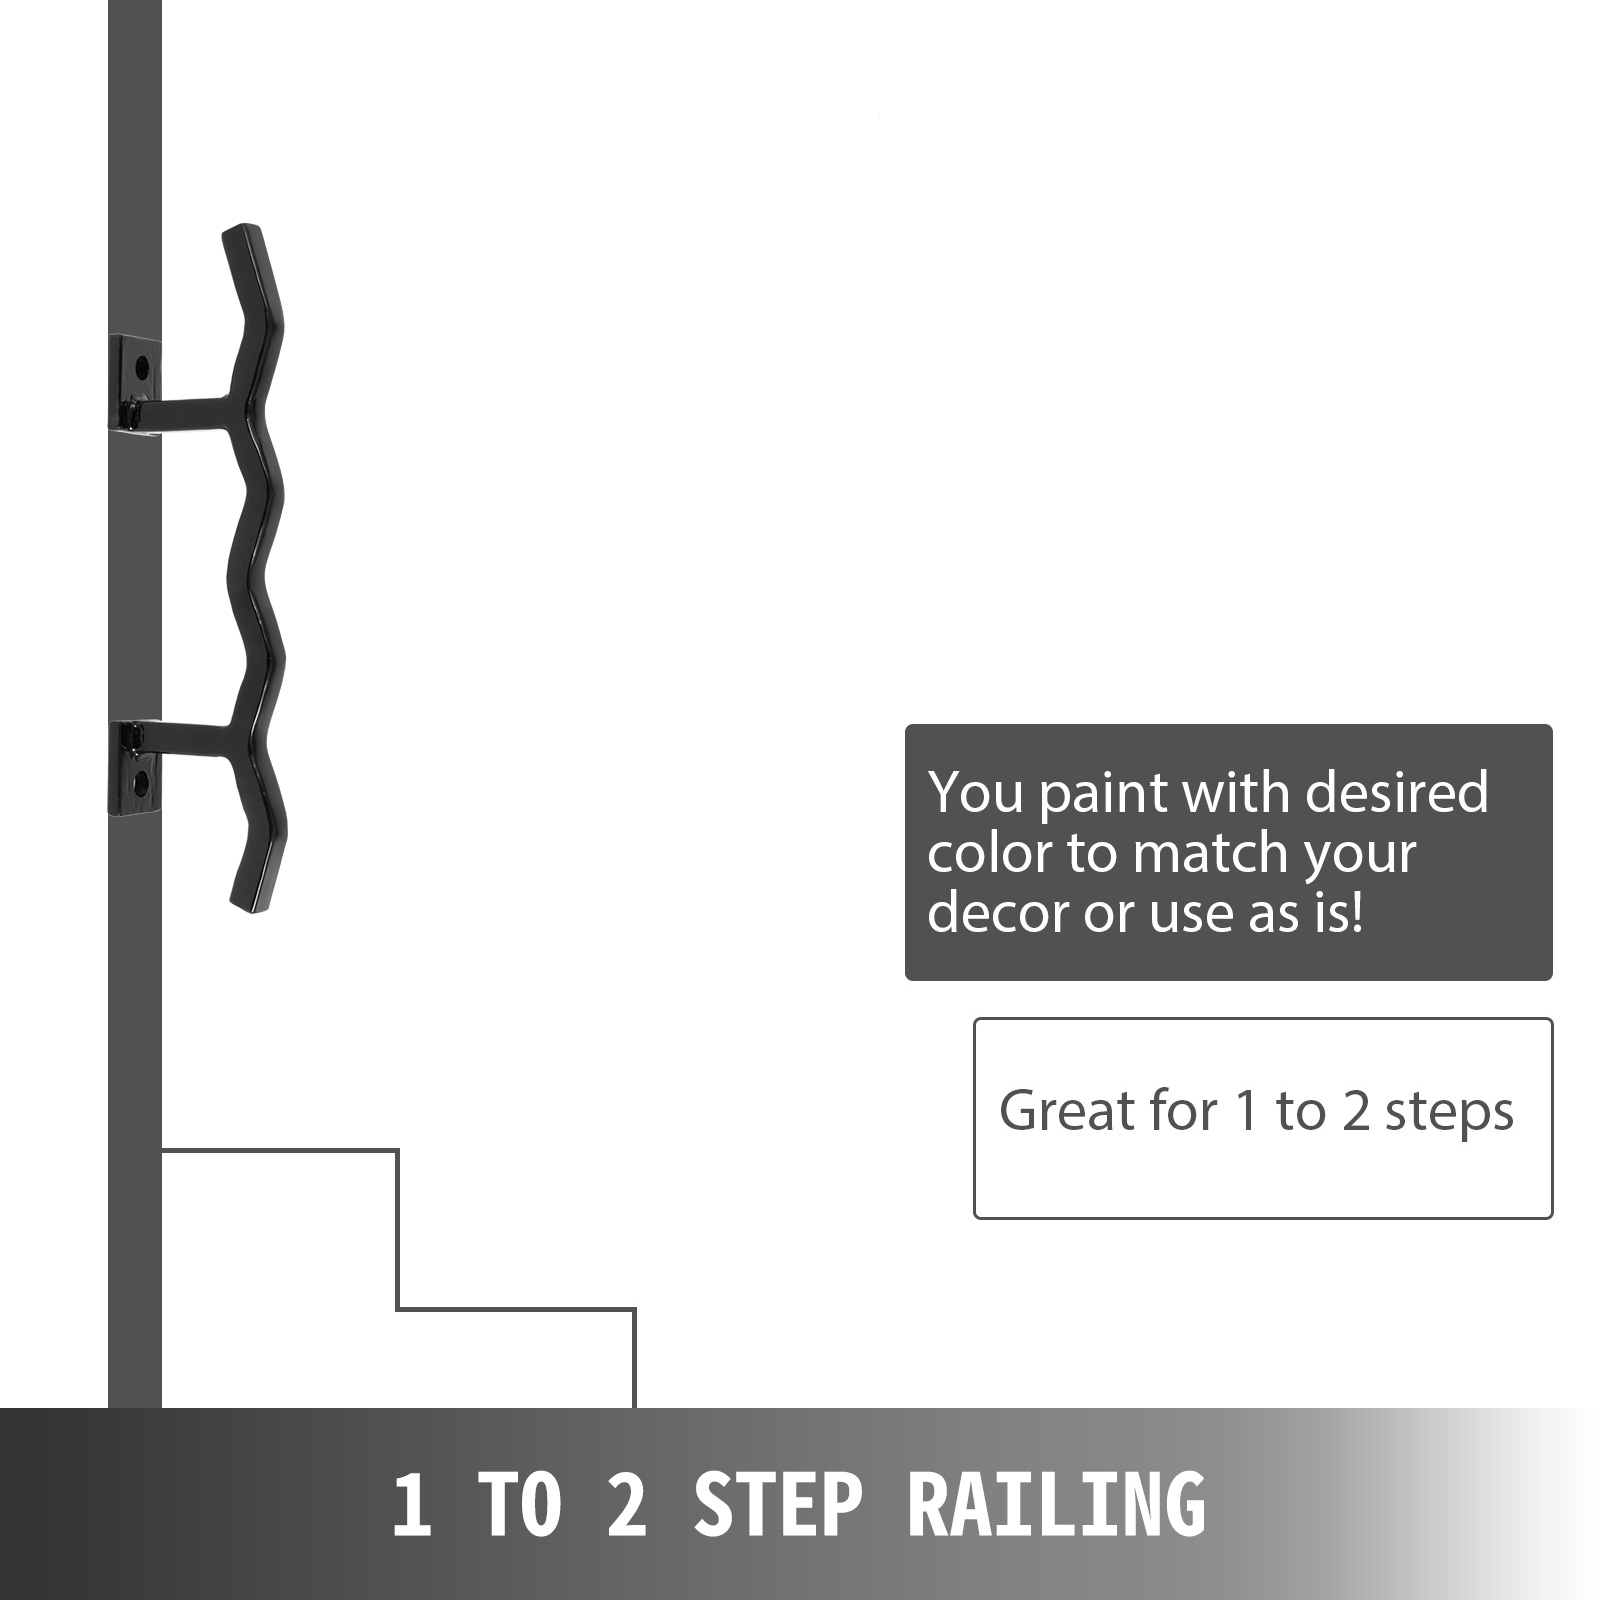 Handrails-for-Outdoor-Step-Wrought-Iron-Handrail-20-034-Length-Porch-Deck-Railing thumbnail 15